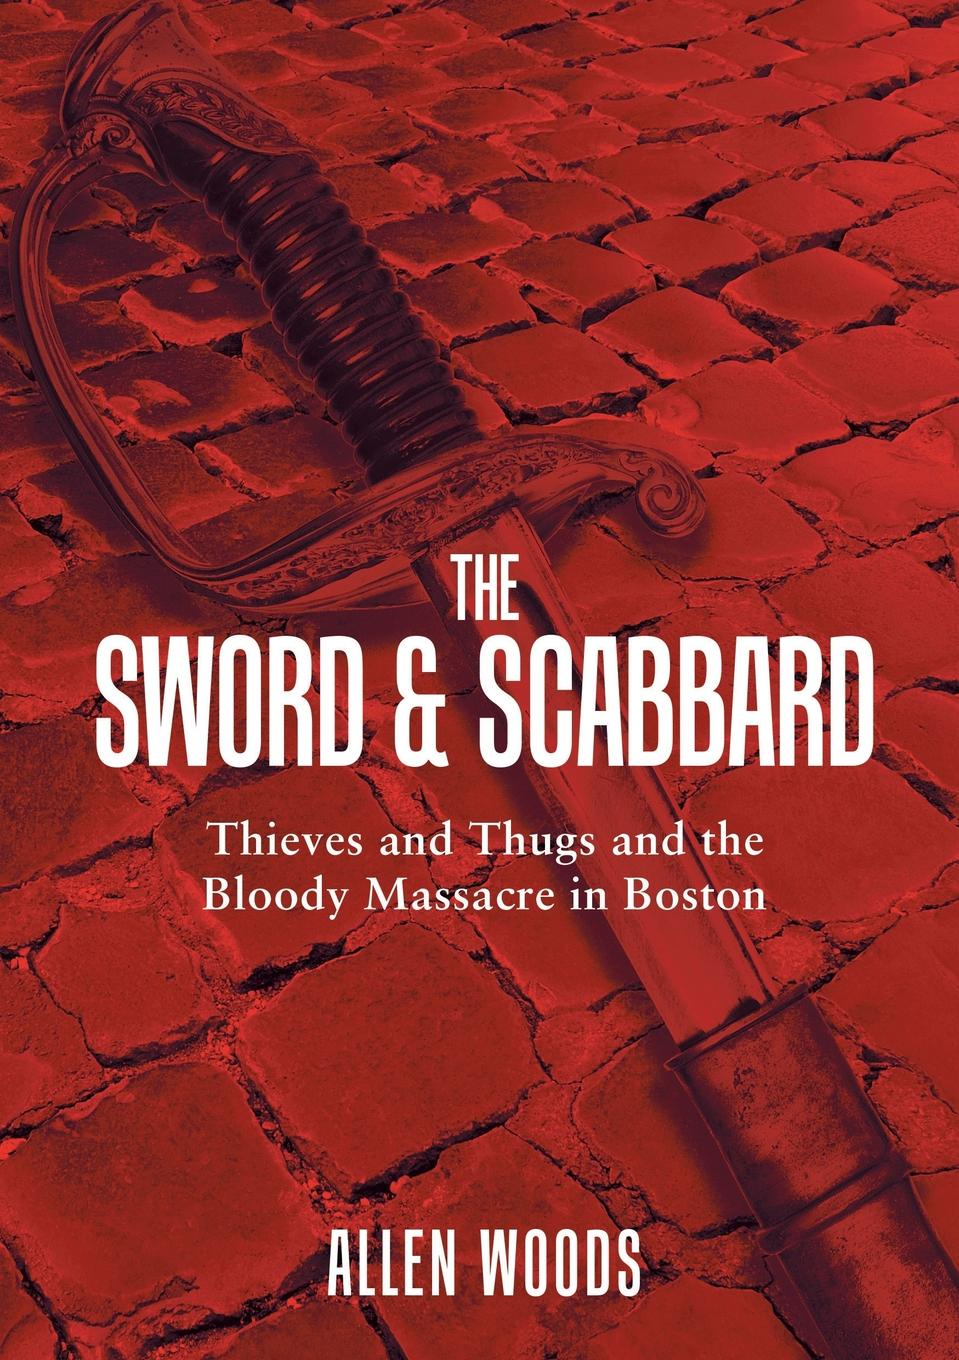 Allen Woods The Sword and Scabbard. Thieves and Thugs and the Bloody Massacre In Boston whetstone cutlery zatochi katana sword with scabbard